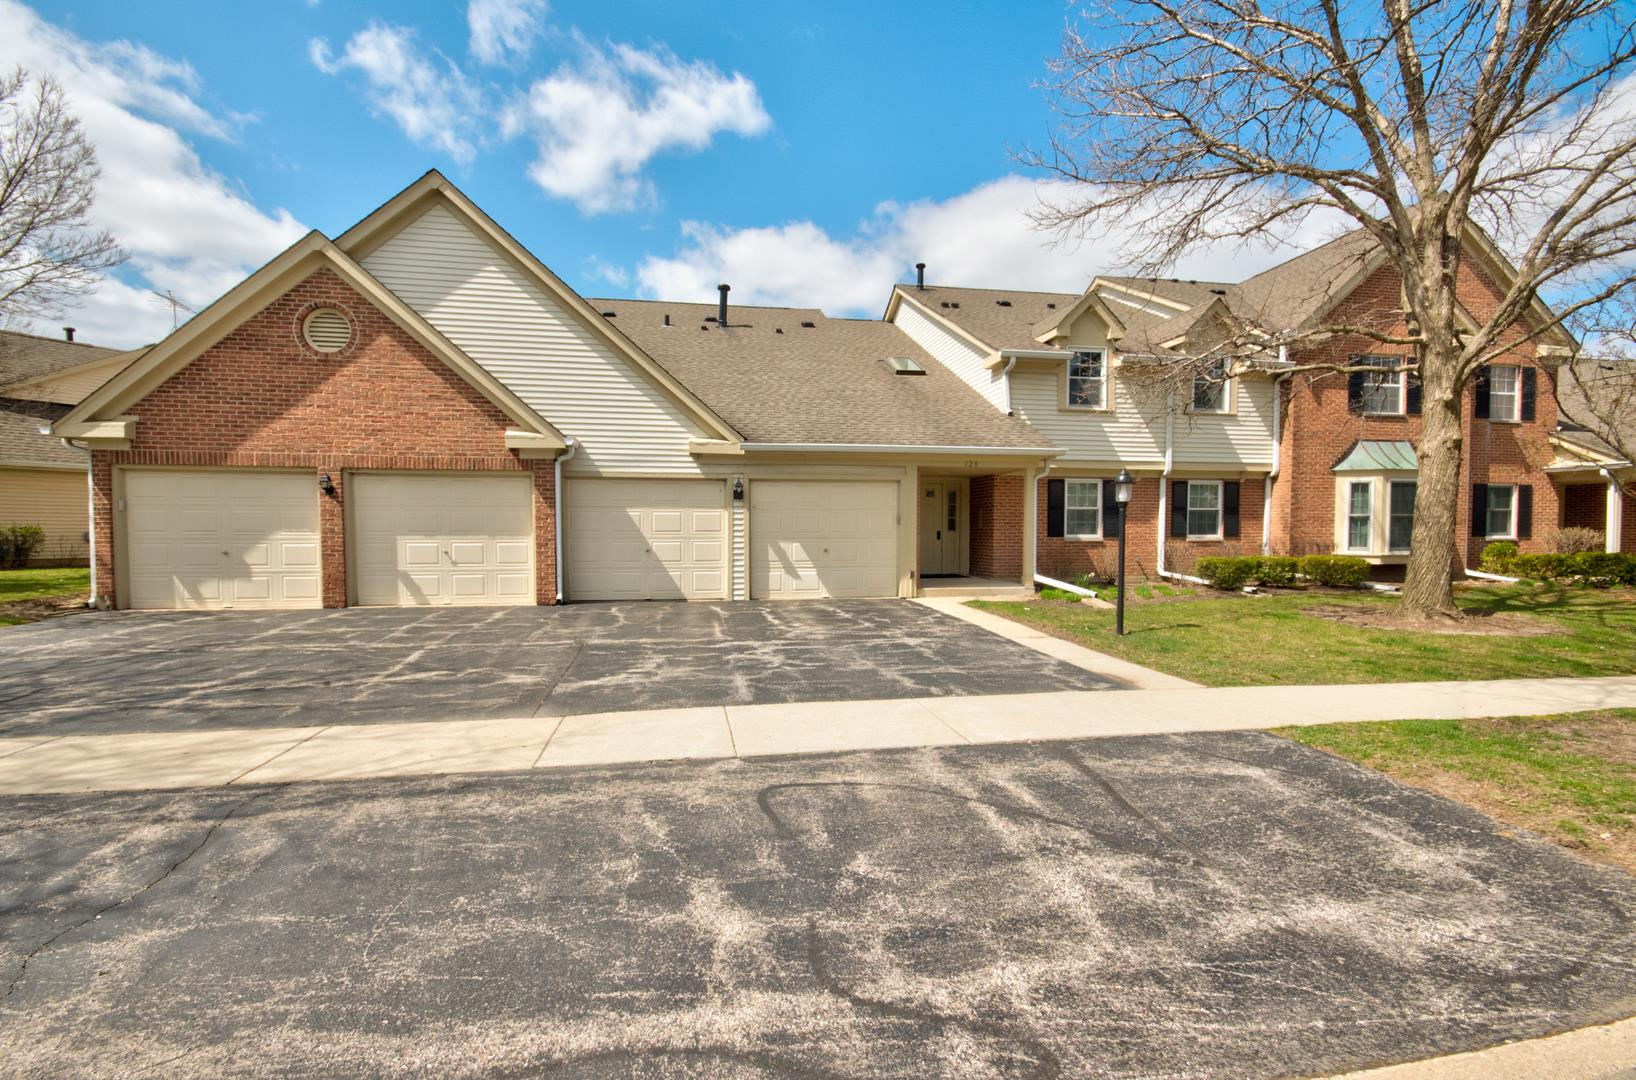 128 Stirling Lane #X-1, Schaumburg, IL 60194 - #: 10689488